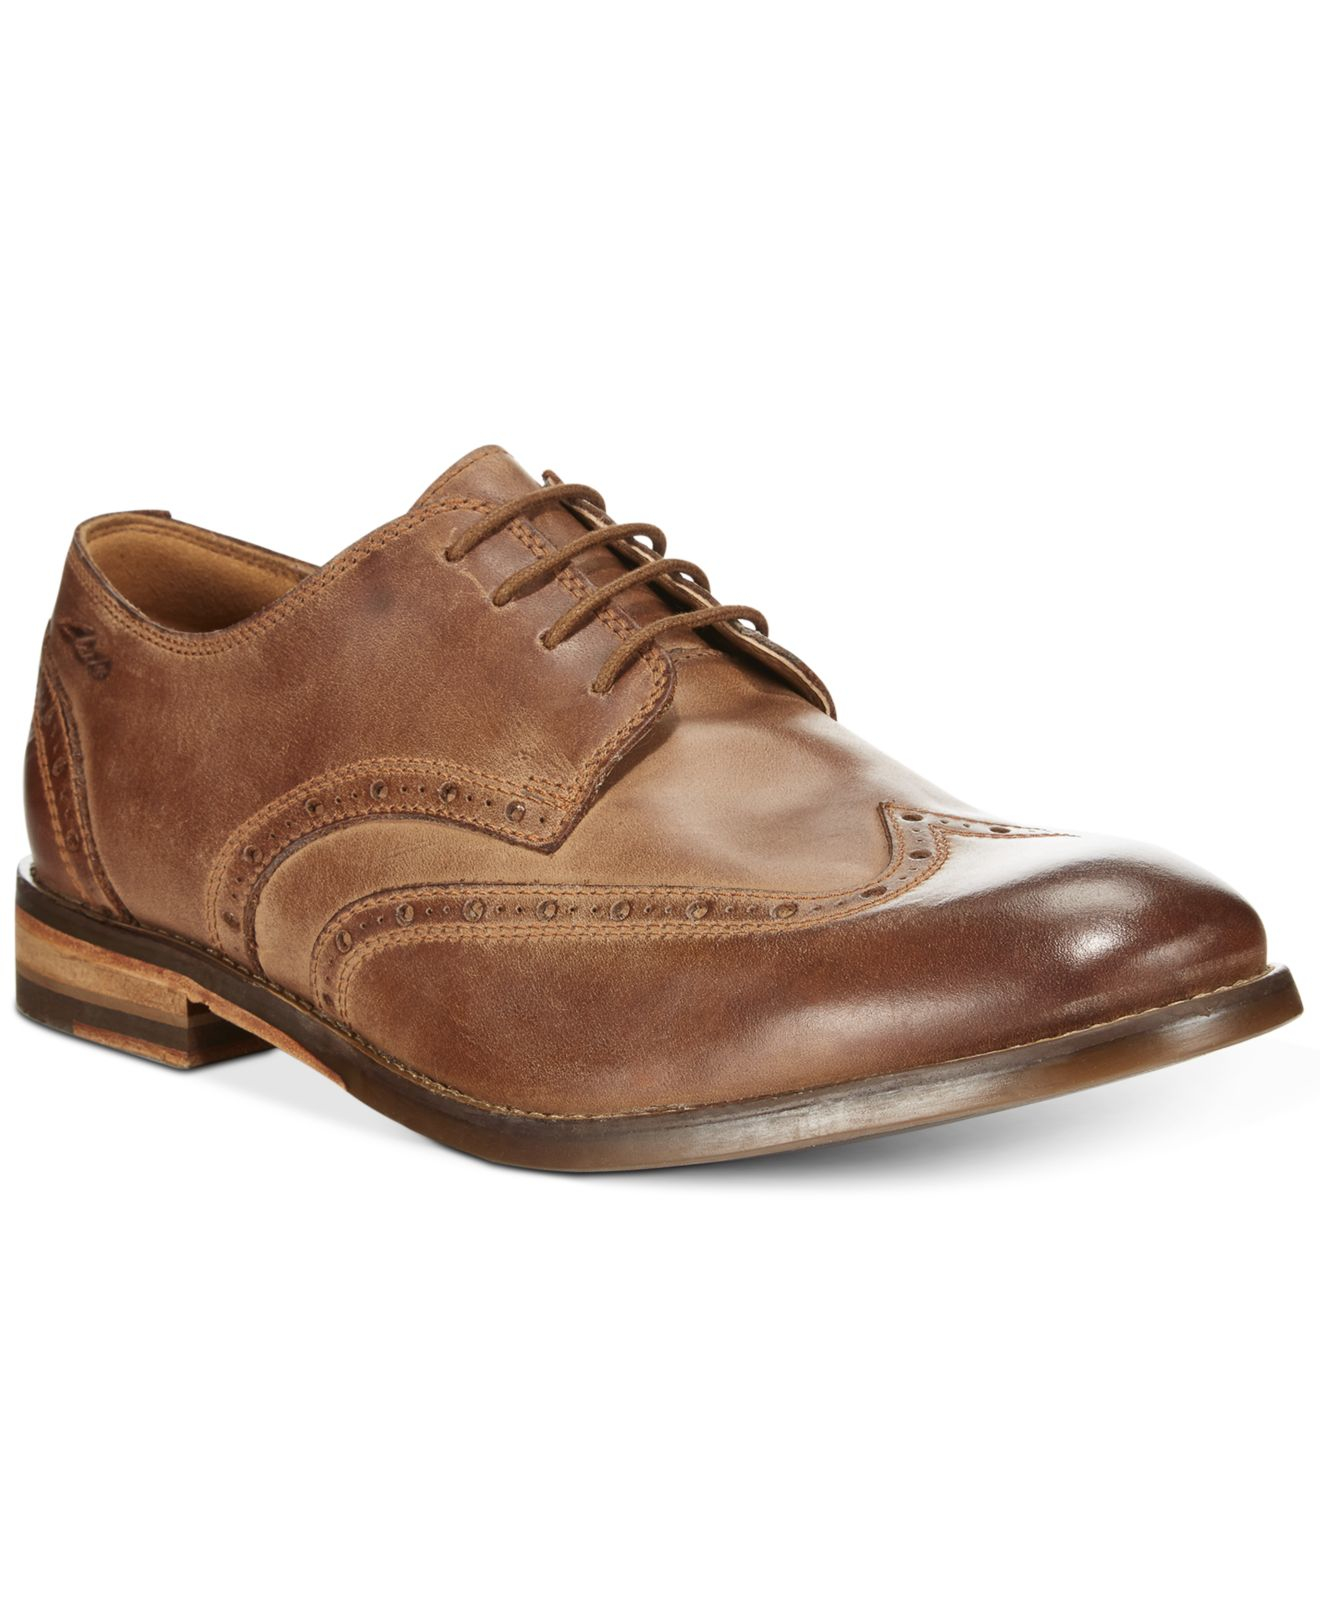 lionville men Shop for womens, mens and kids shoes and more at macy's exton square in exton, pa and find deals and events going in store right now.